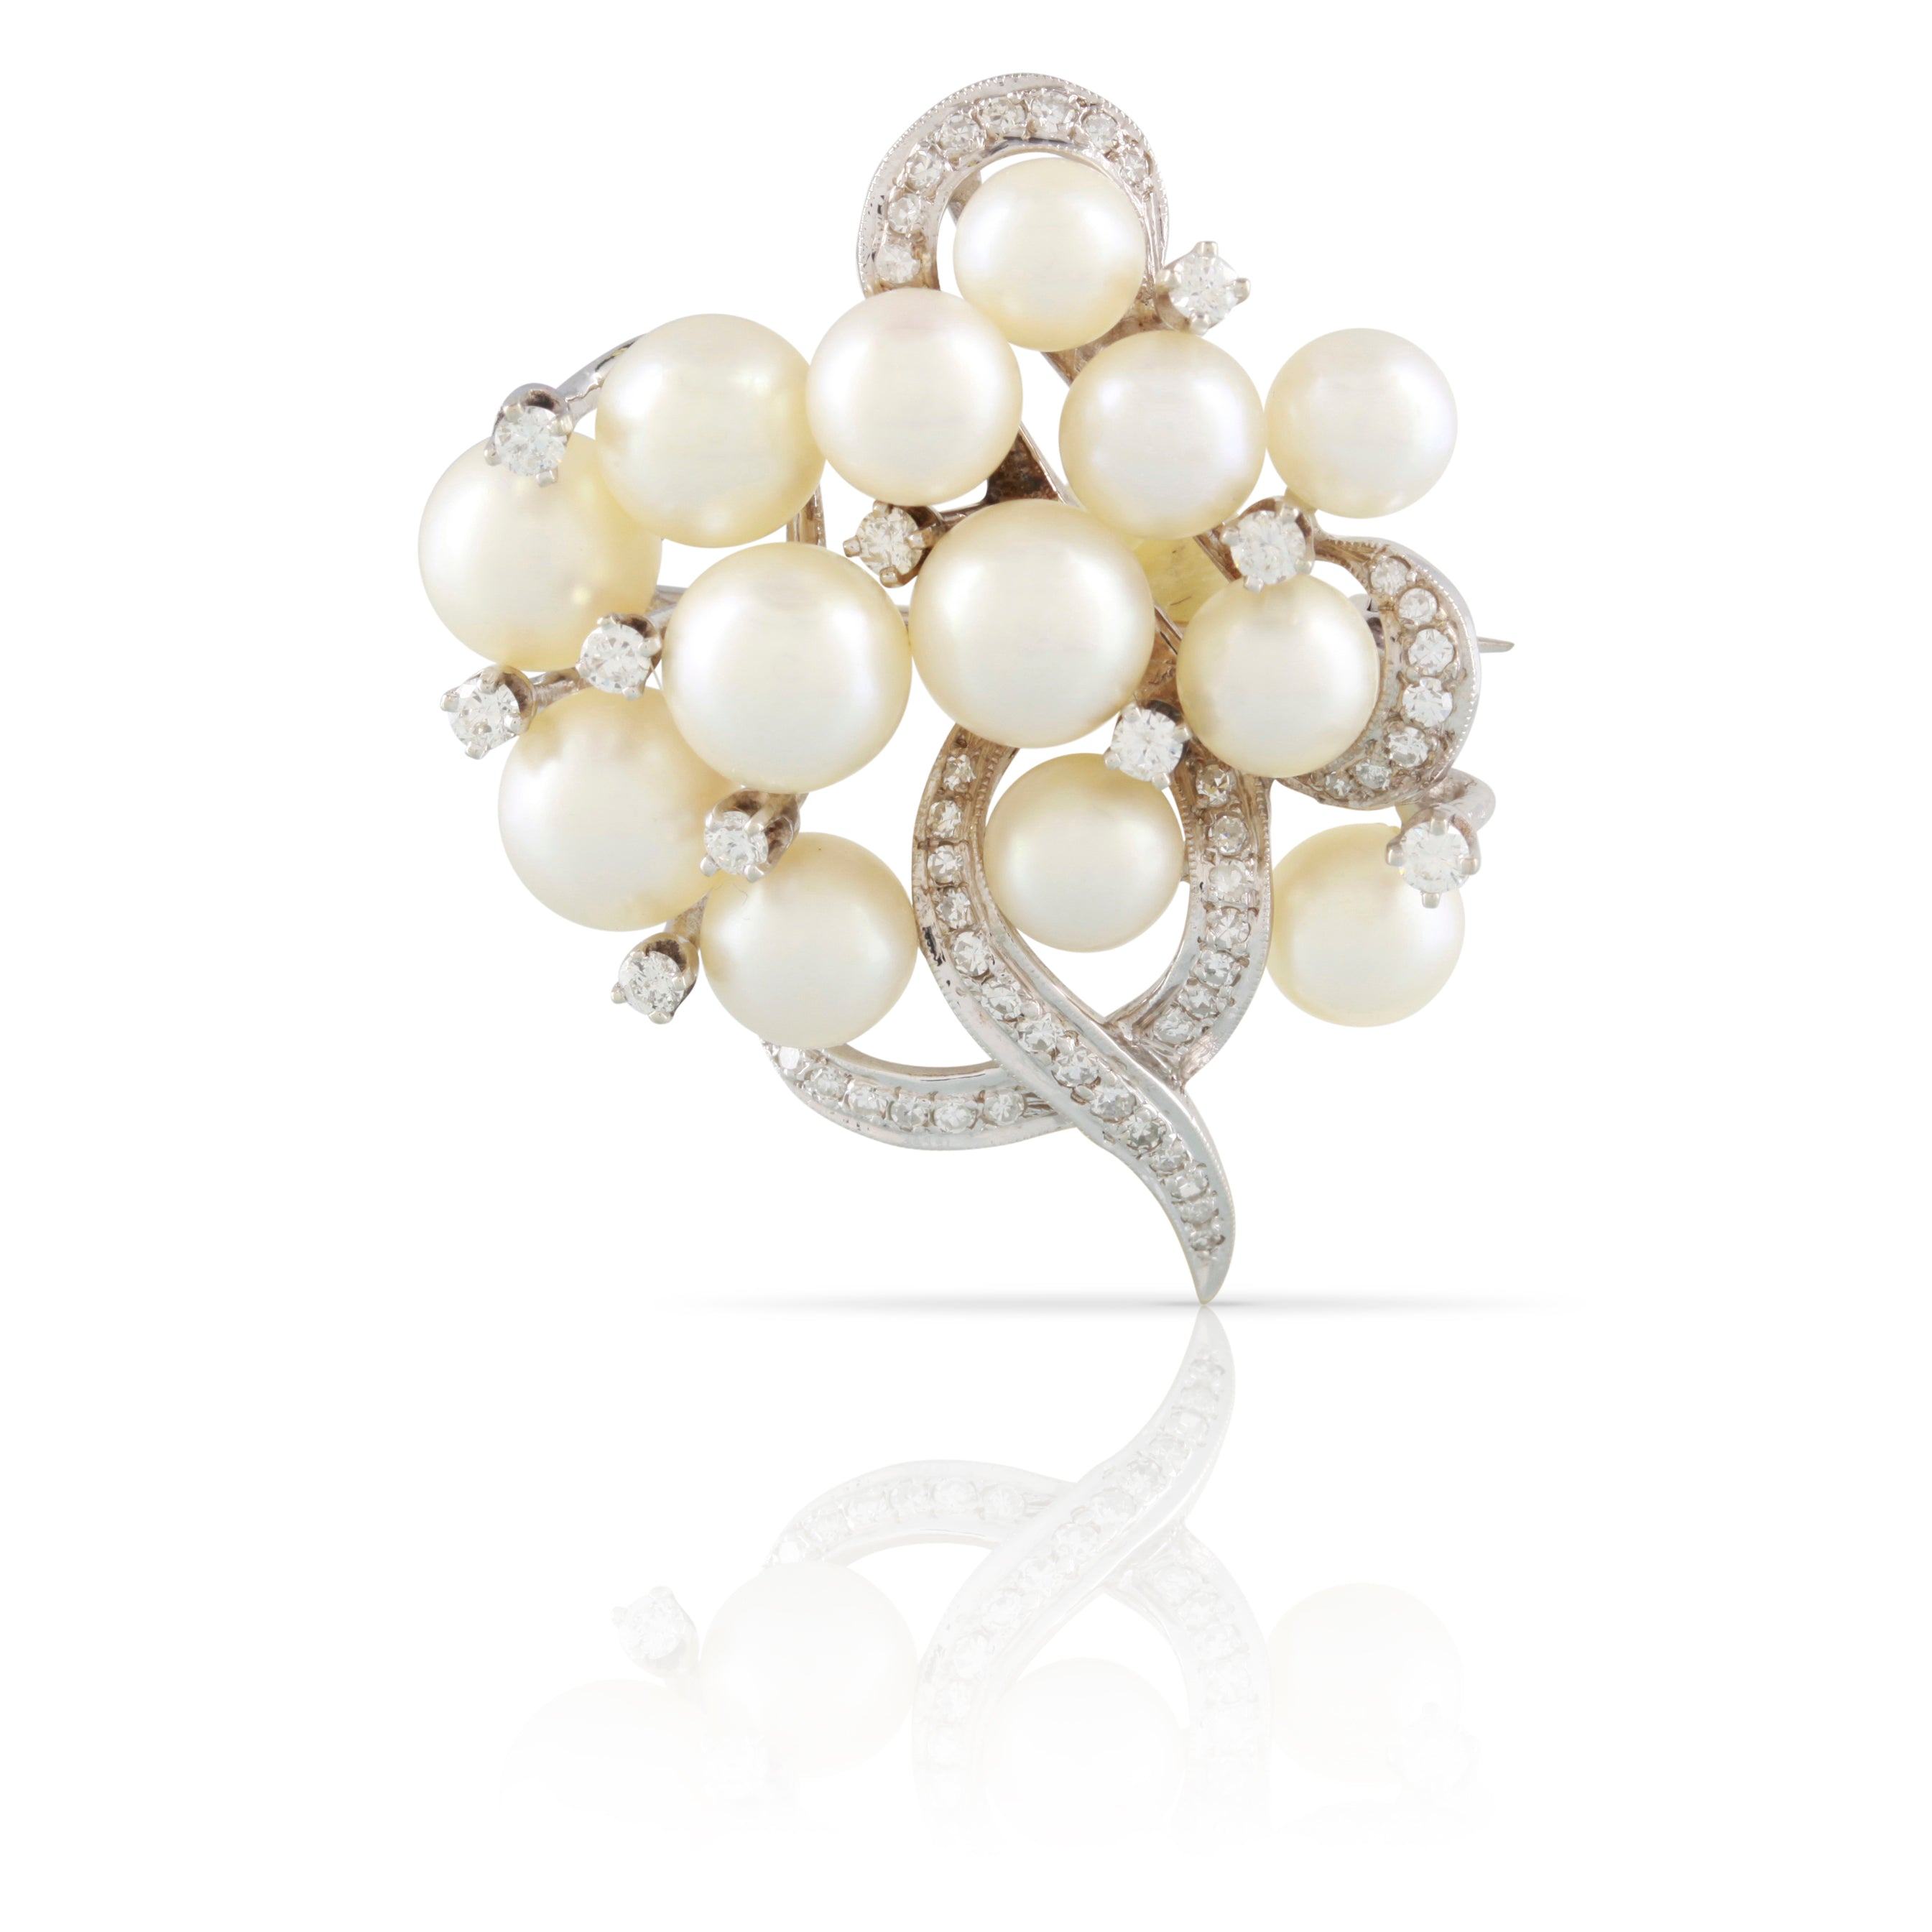 Vintage Pearl and Diamond Brooch | The Rosalie